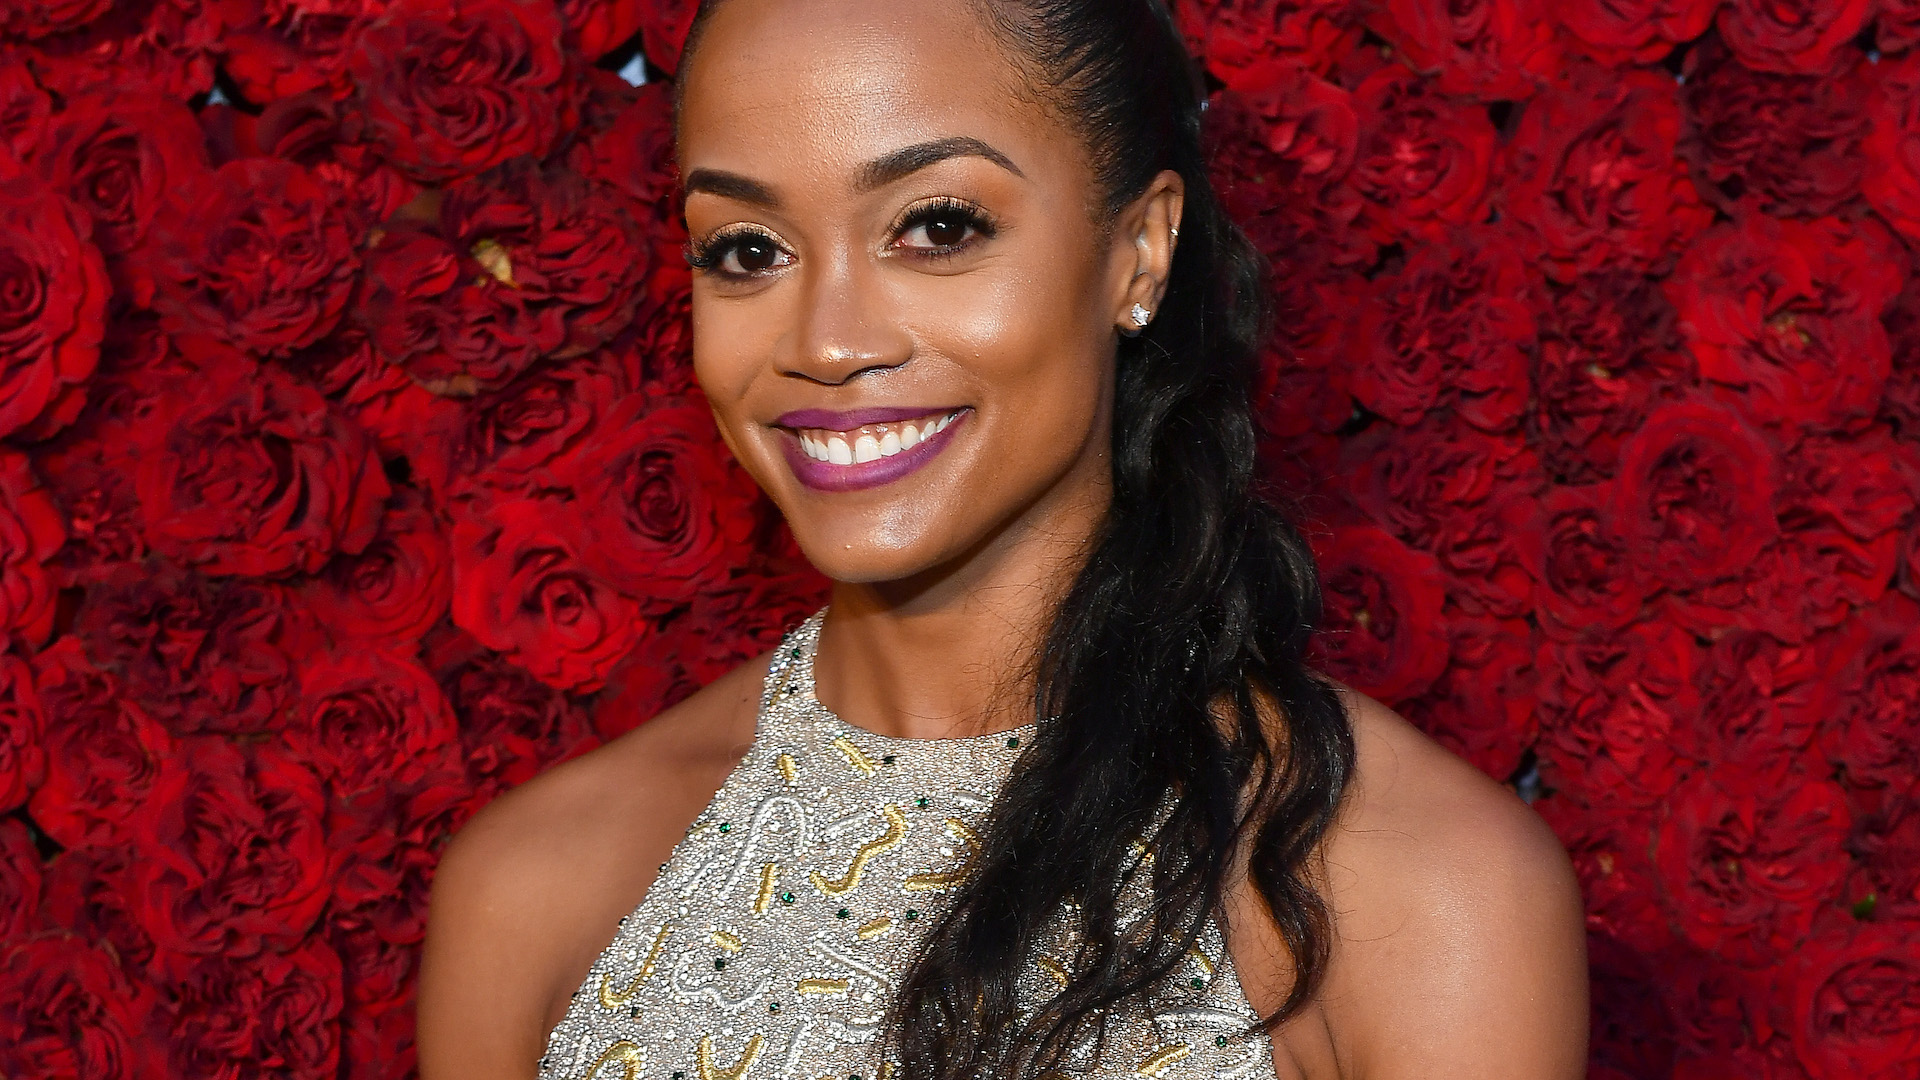 Rachel Lindsay Disabled Her Instagram Account Following Harassment from 'Bachelor' Fans